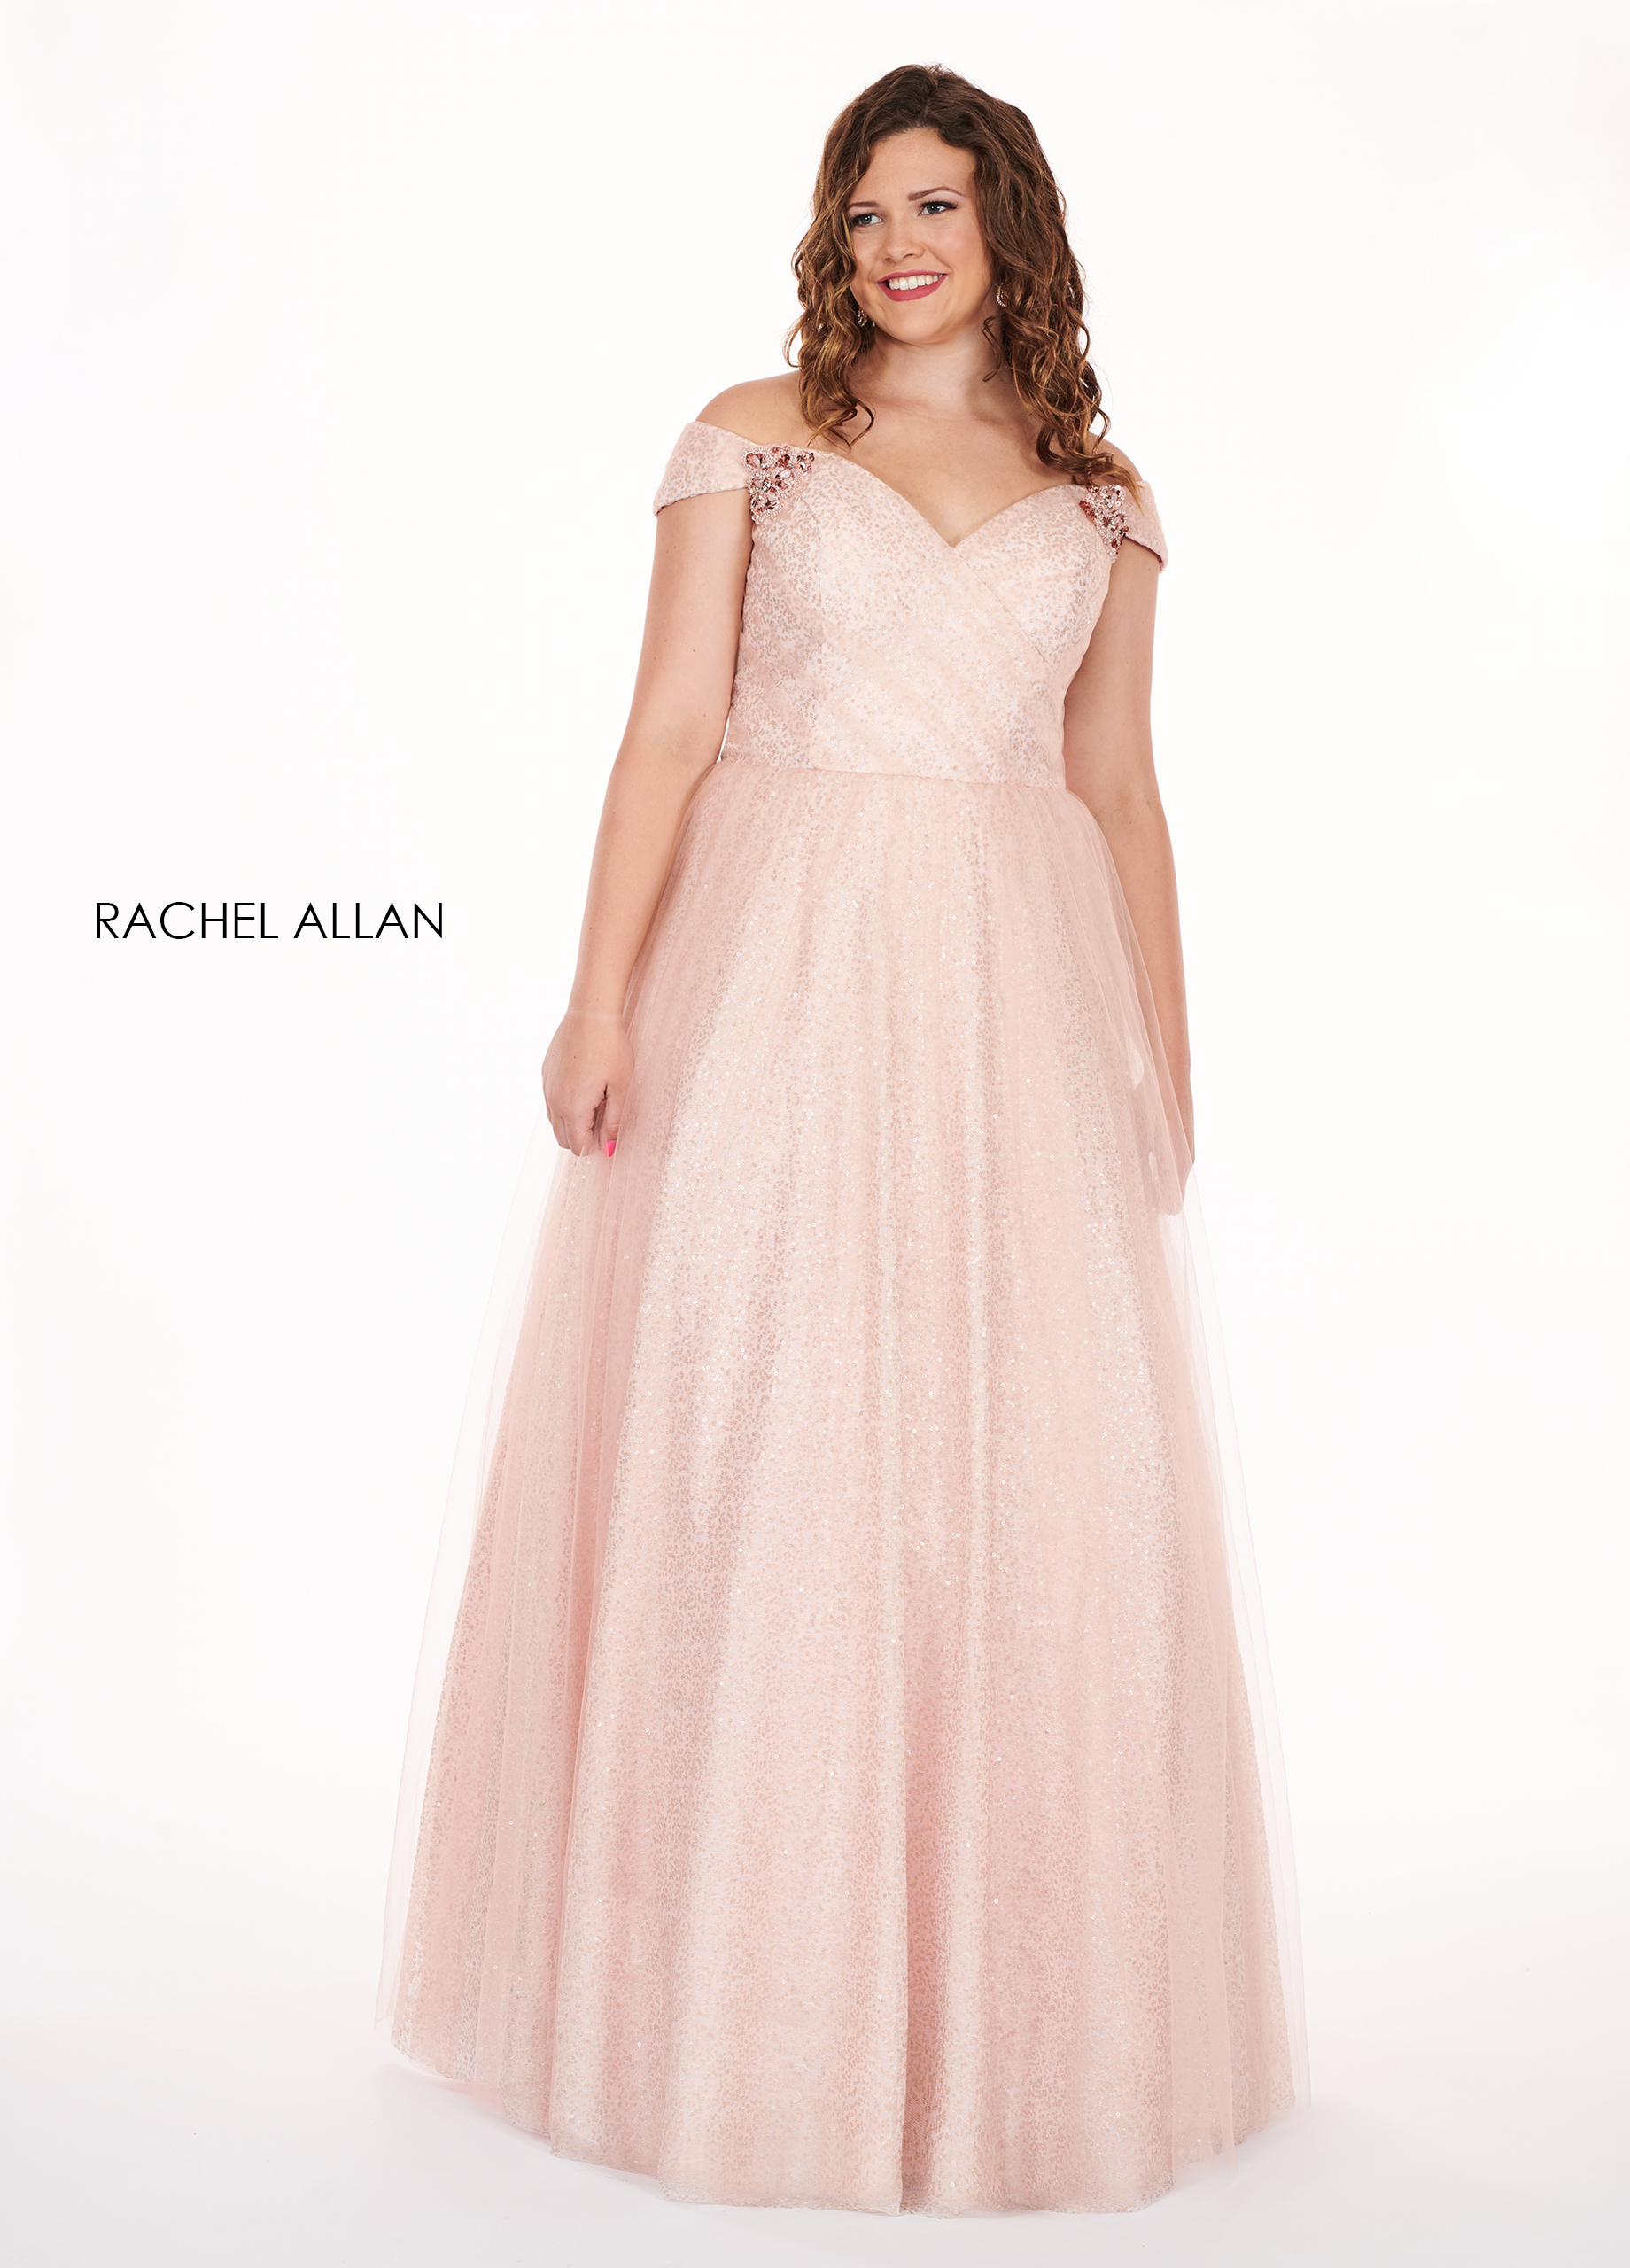 Off The Shoulder Ball Gowns Plus Size Dresses in Pink Color